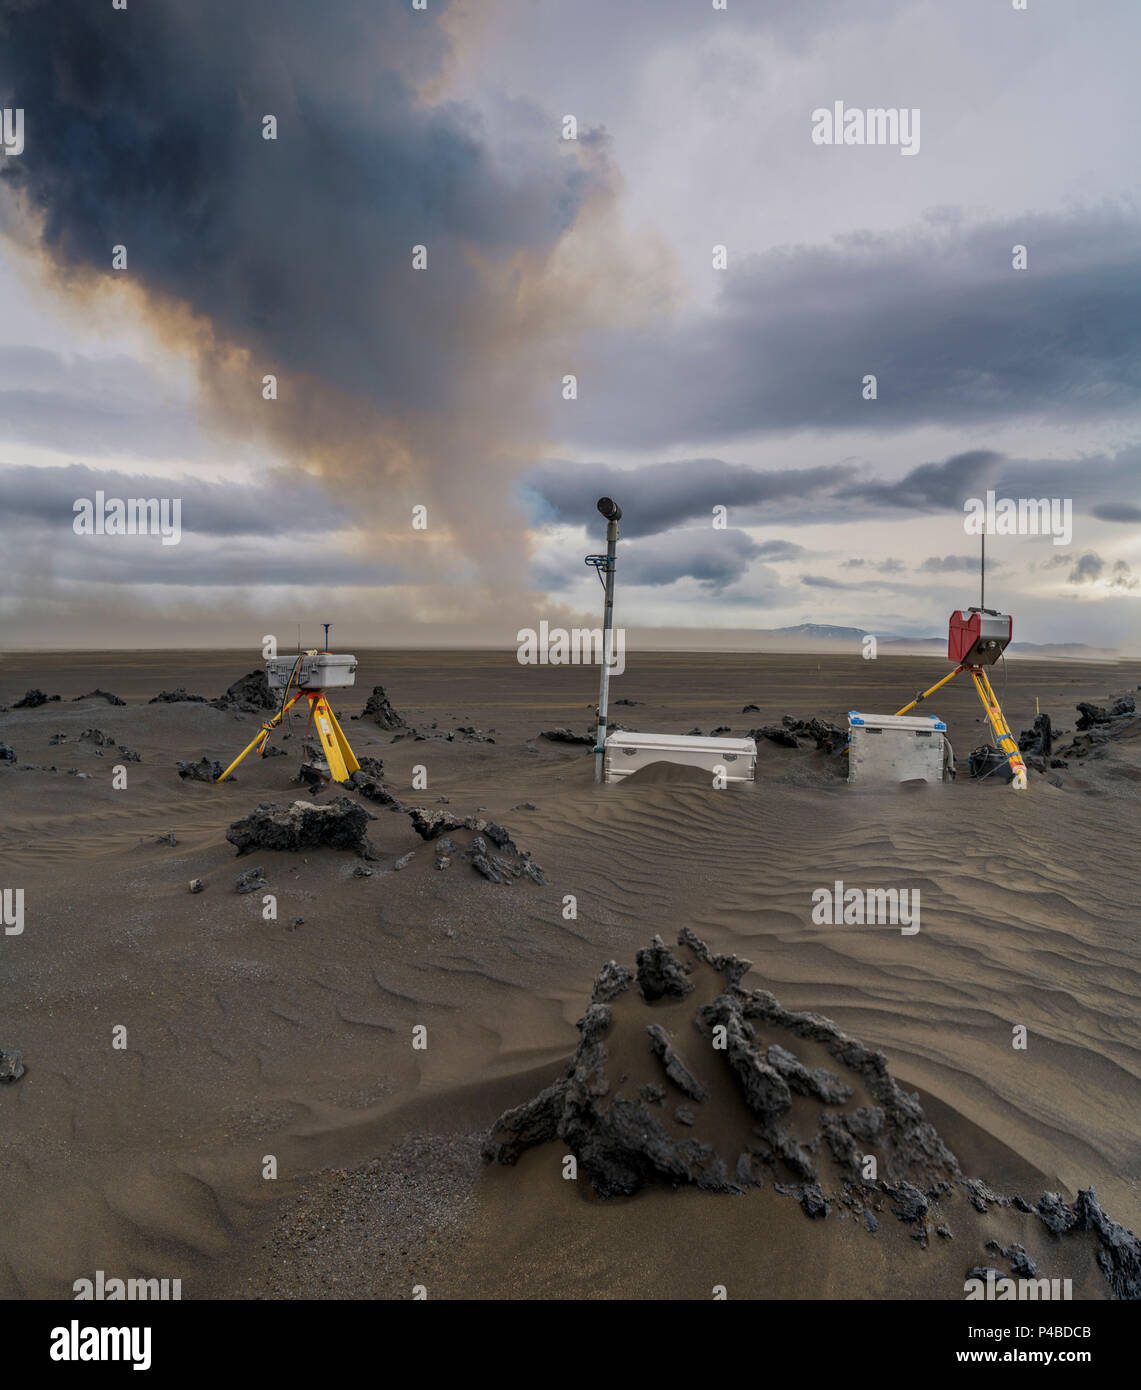 Scientific equipment-Volcanic plumes with toxic gases, Holuhraun Fissure Eruption, Iceland. August 29, 2014 a fissure eruption started in Holuhraun at the northern end of a magma intrusion, which had moved progressively north, from the Bardarbunga volcano. Picture Date-Sept.2, 2014 - Stock Image